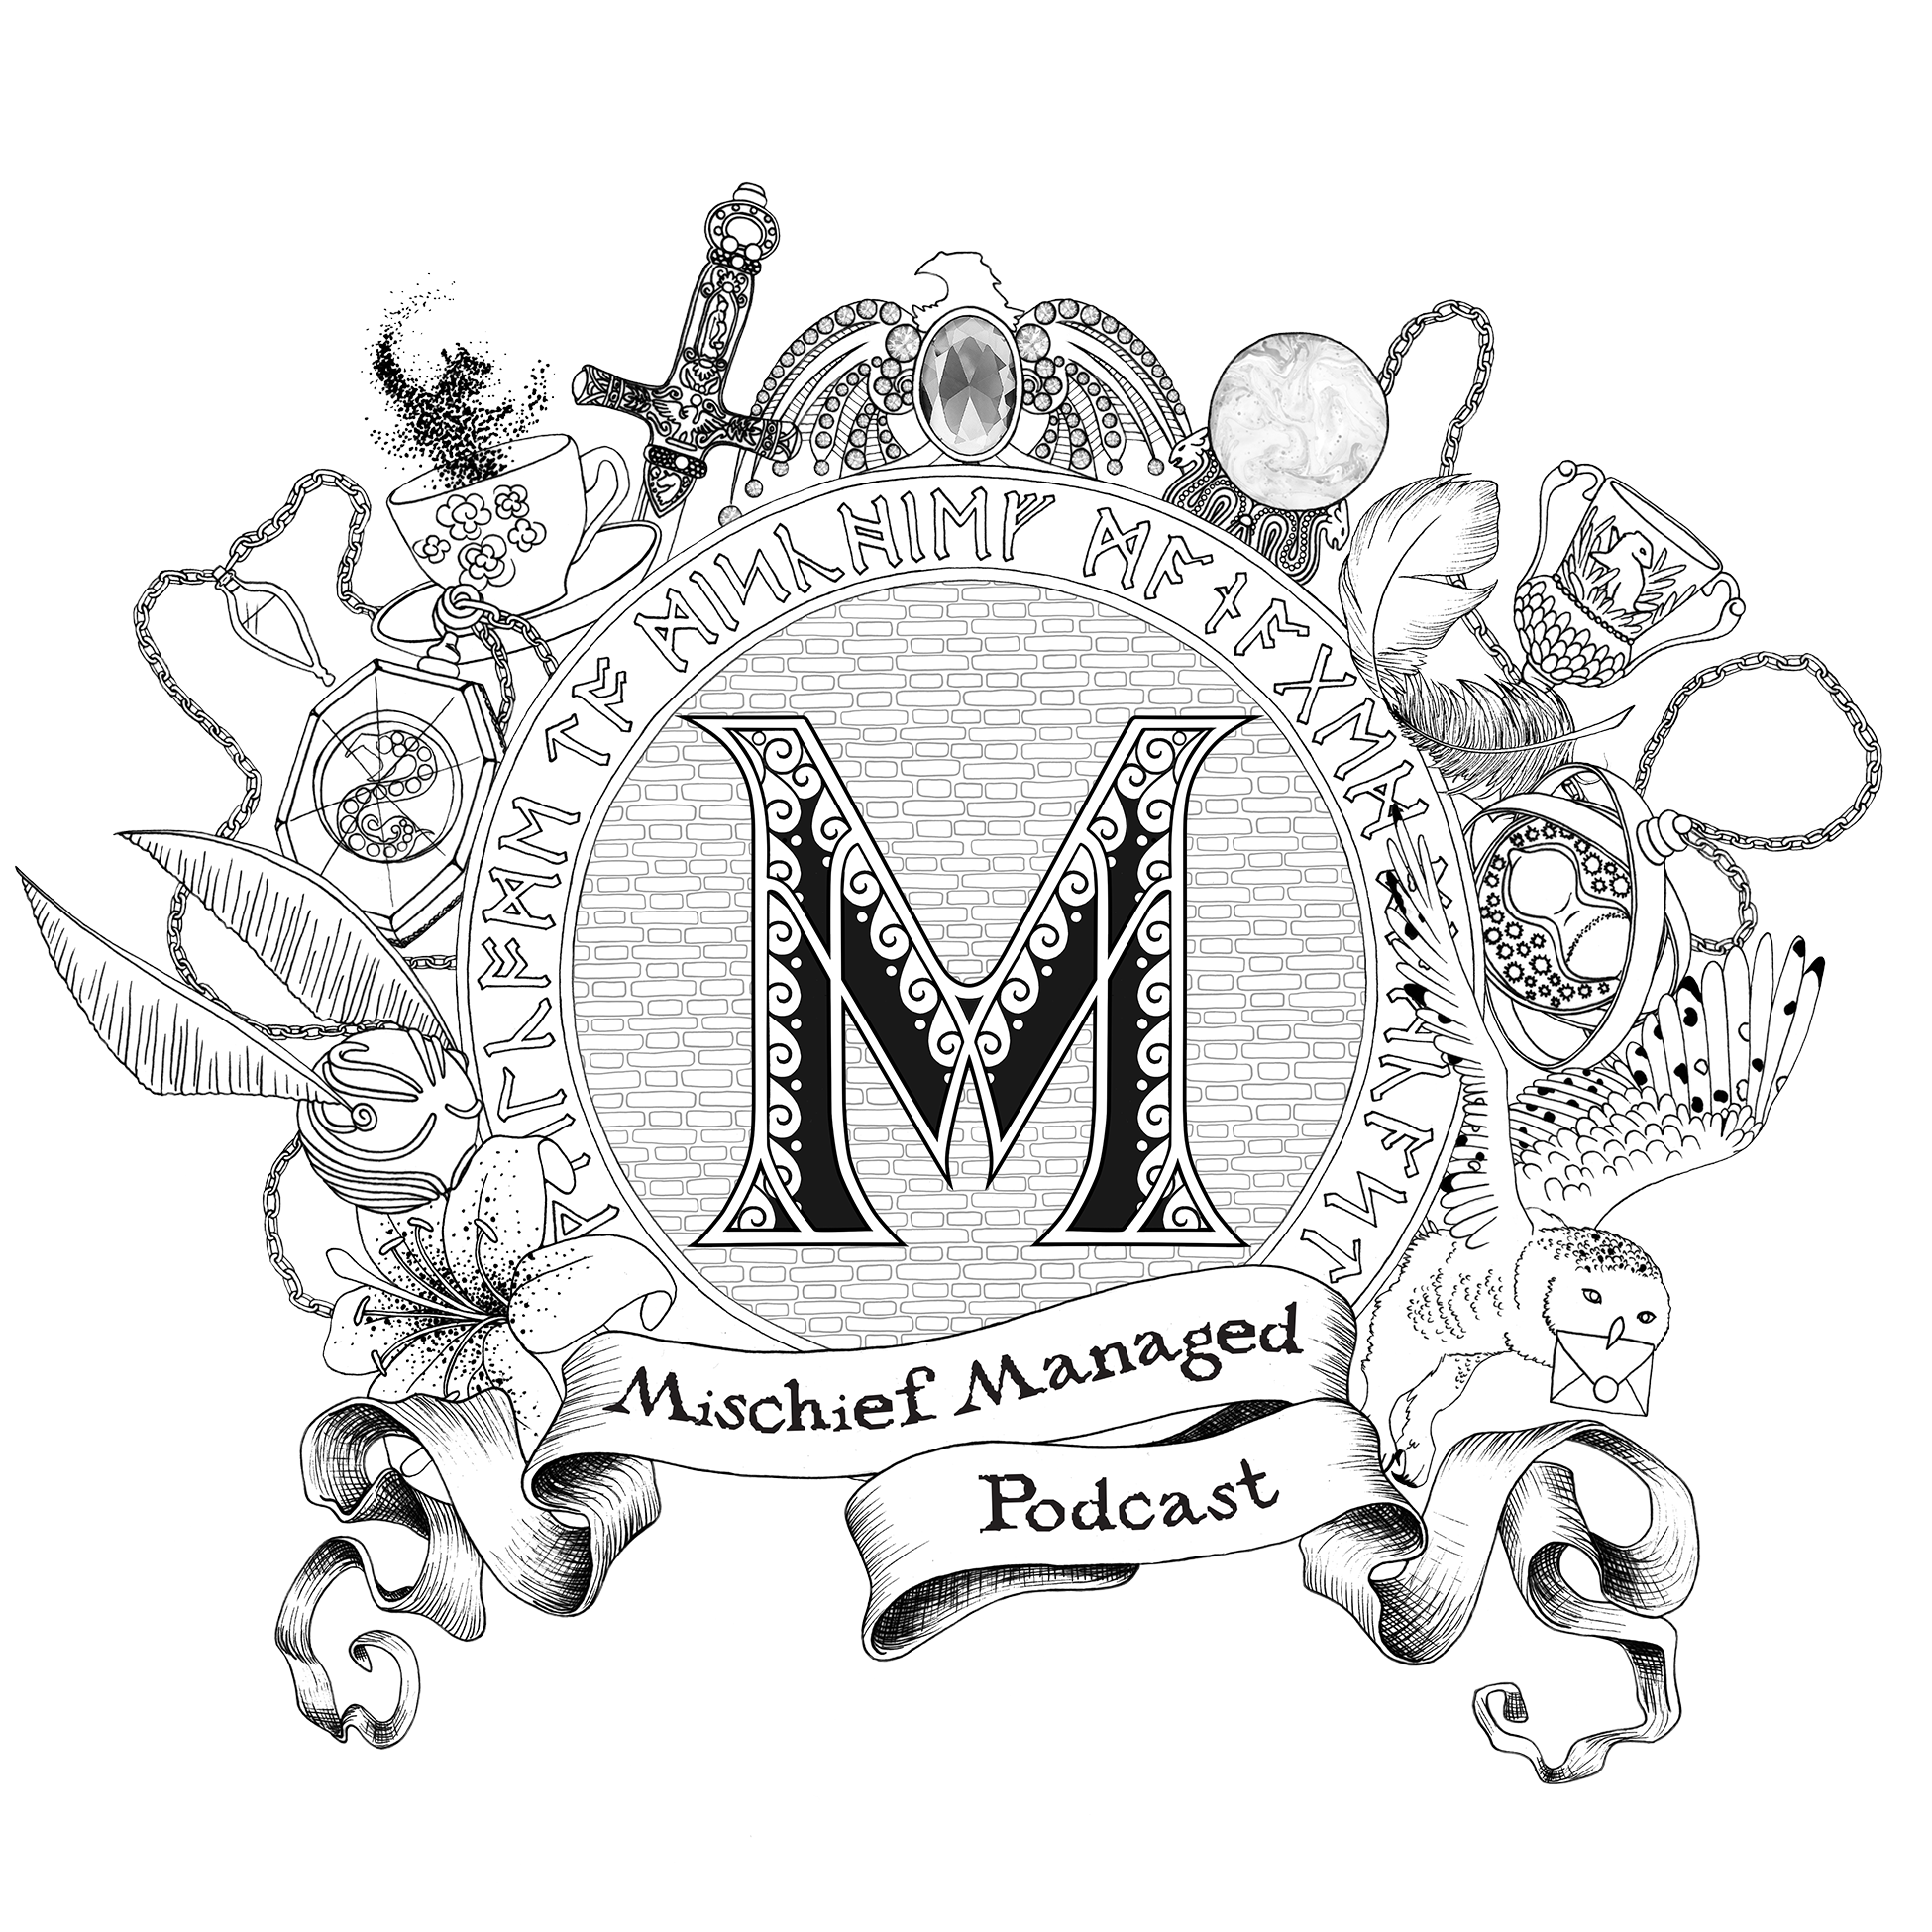 Mischief Managed Podcast: Your recommended dose of Harry